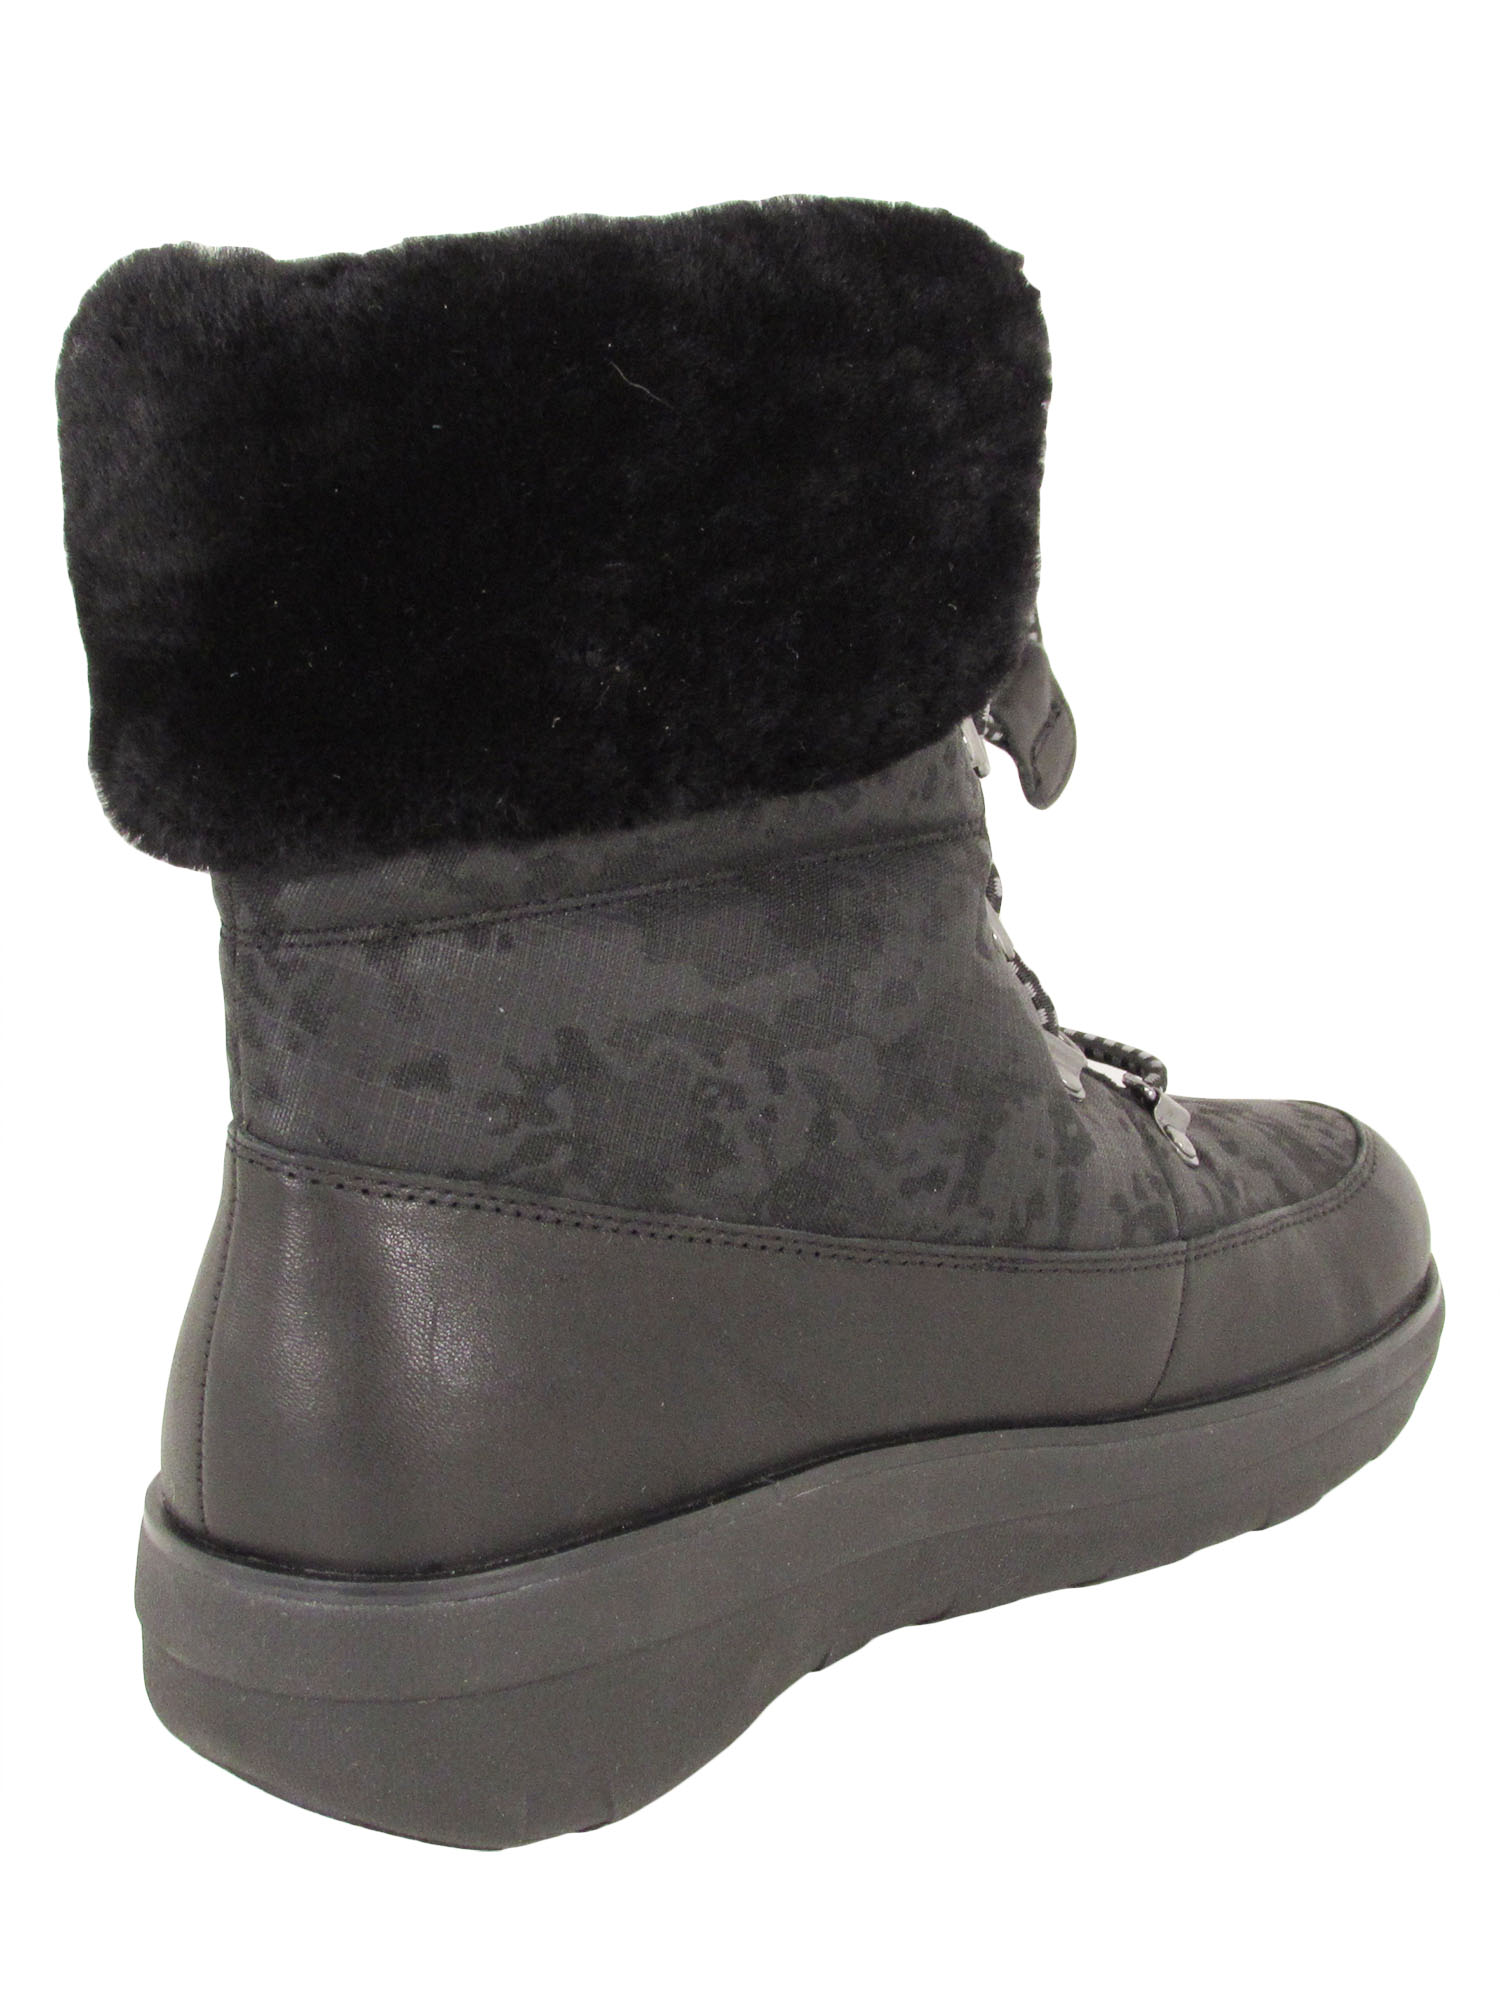 Fitflop-Womens-Holly-Shearling-Lace-Up-Winter-Boot-Shoes thumbnail 4